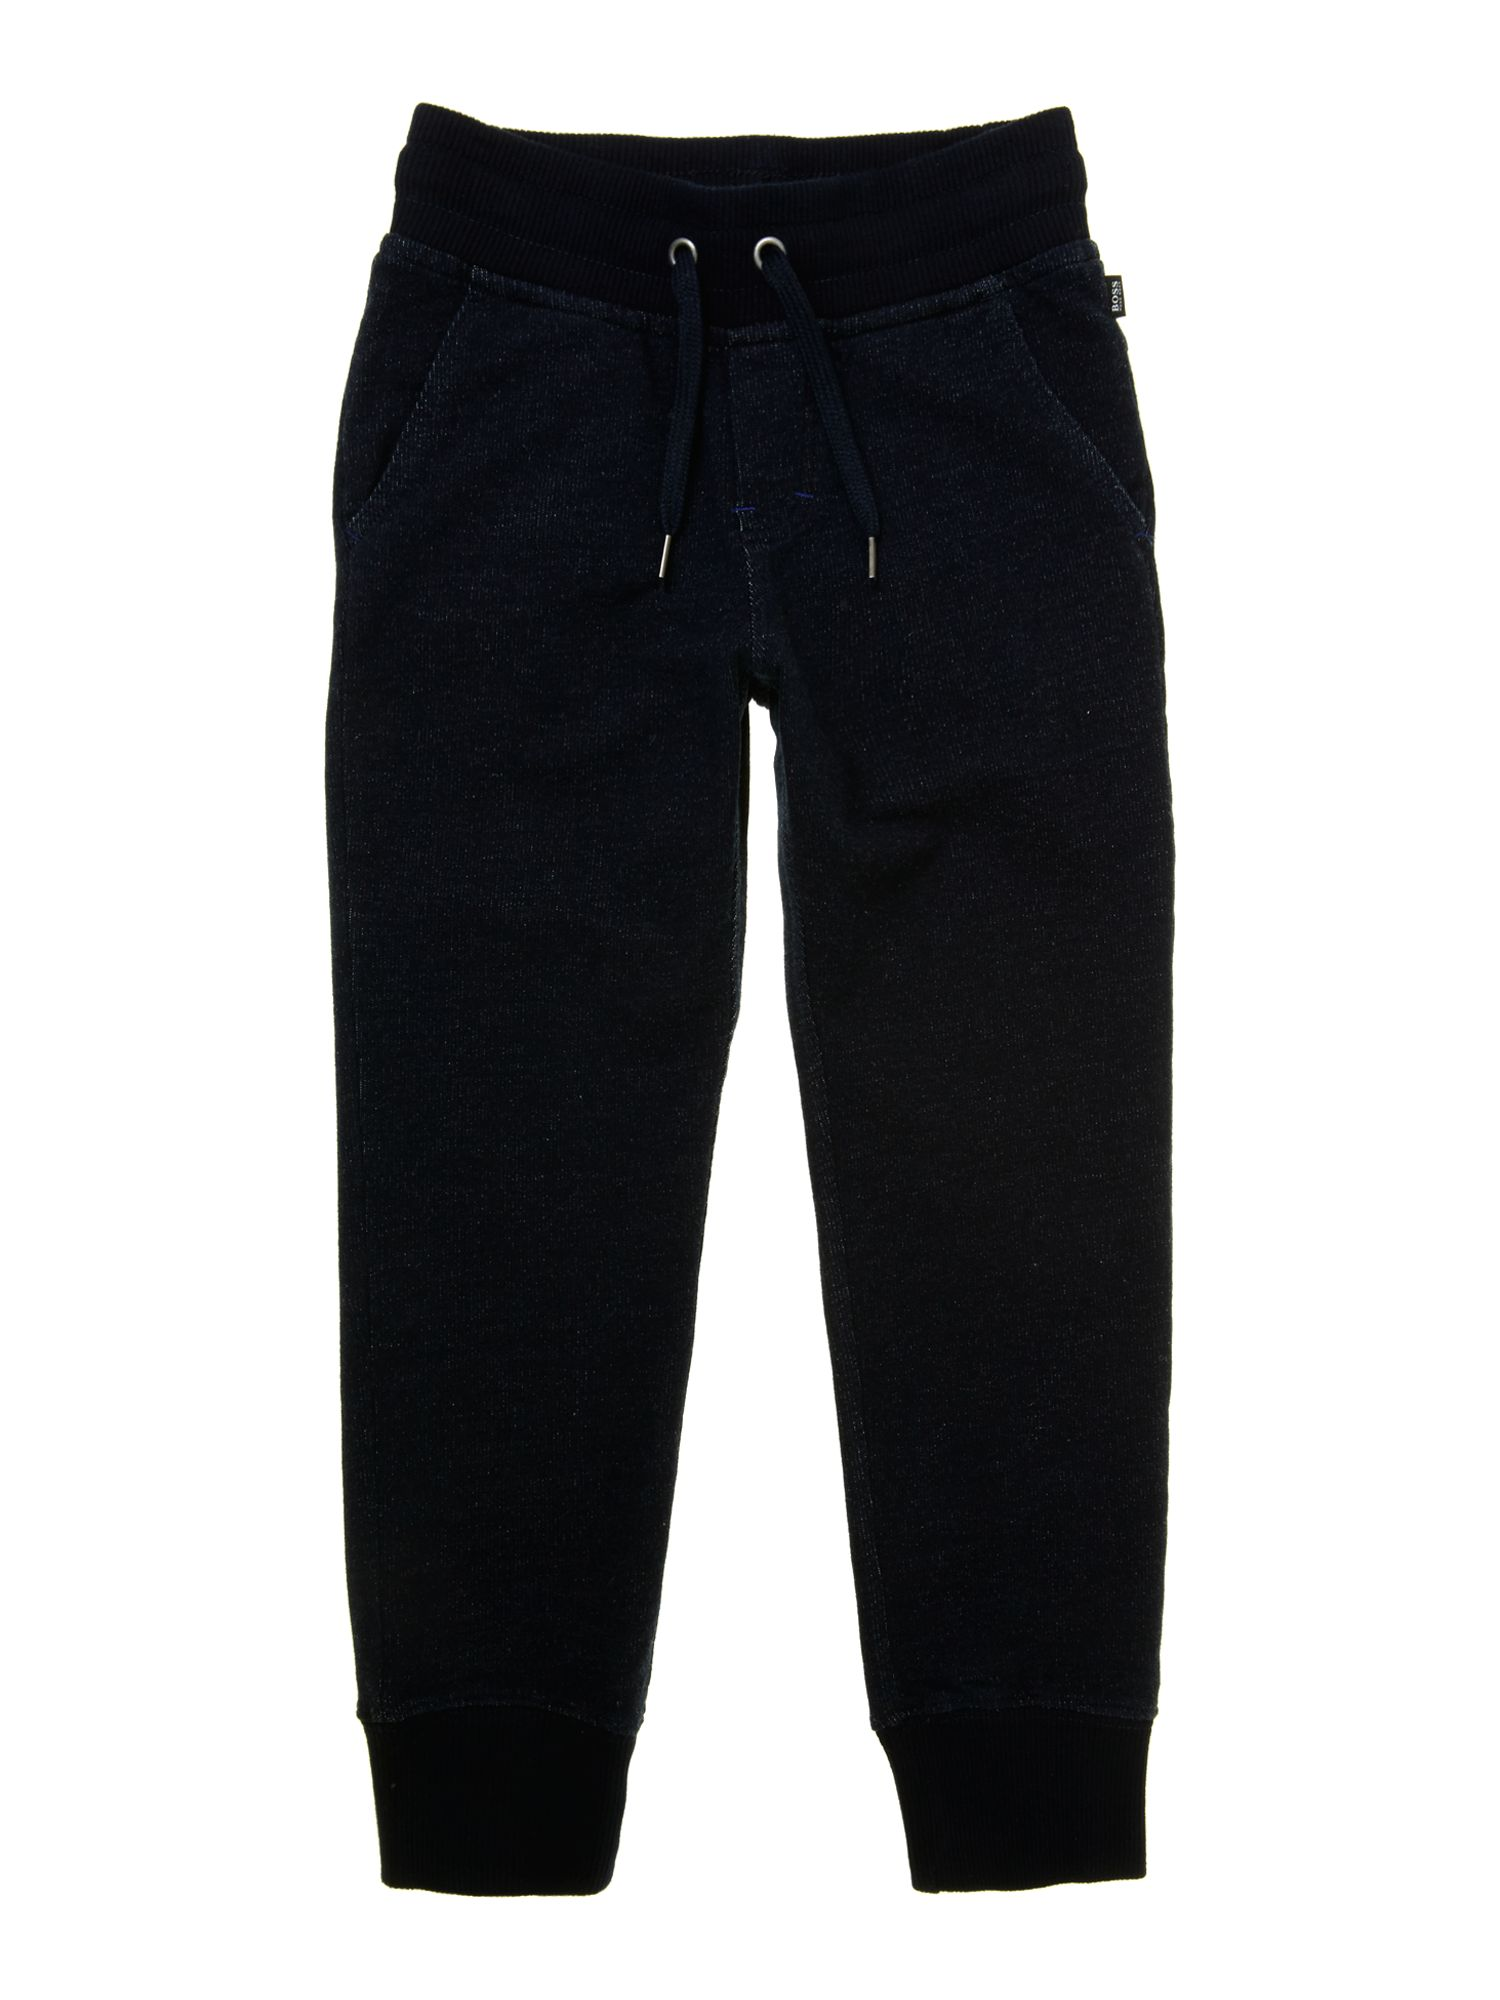 Boys denim fleece jogging bottoms